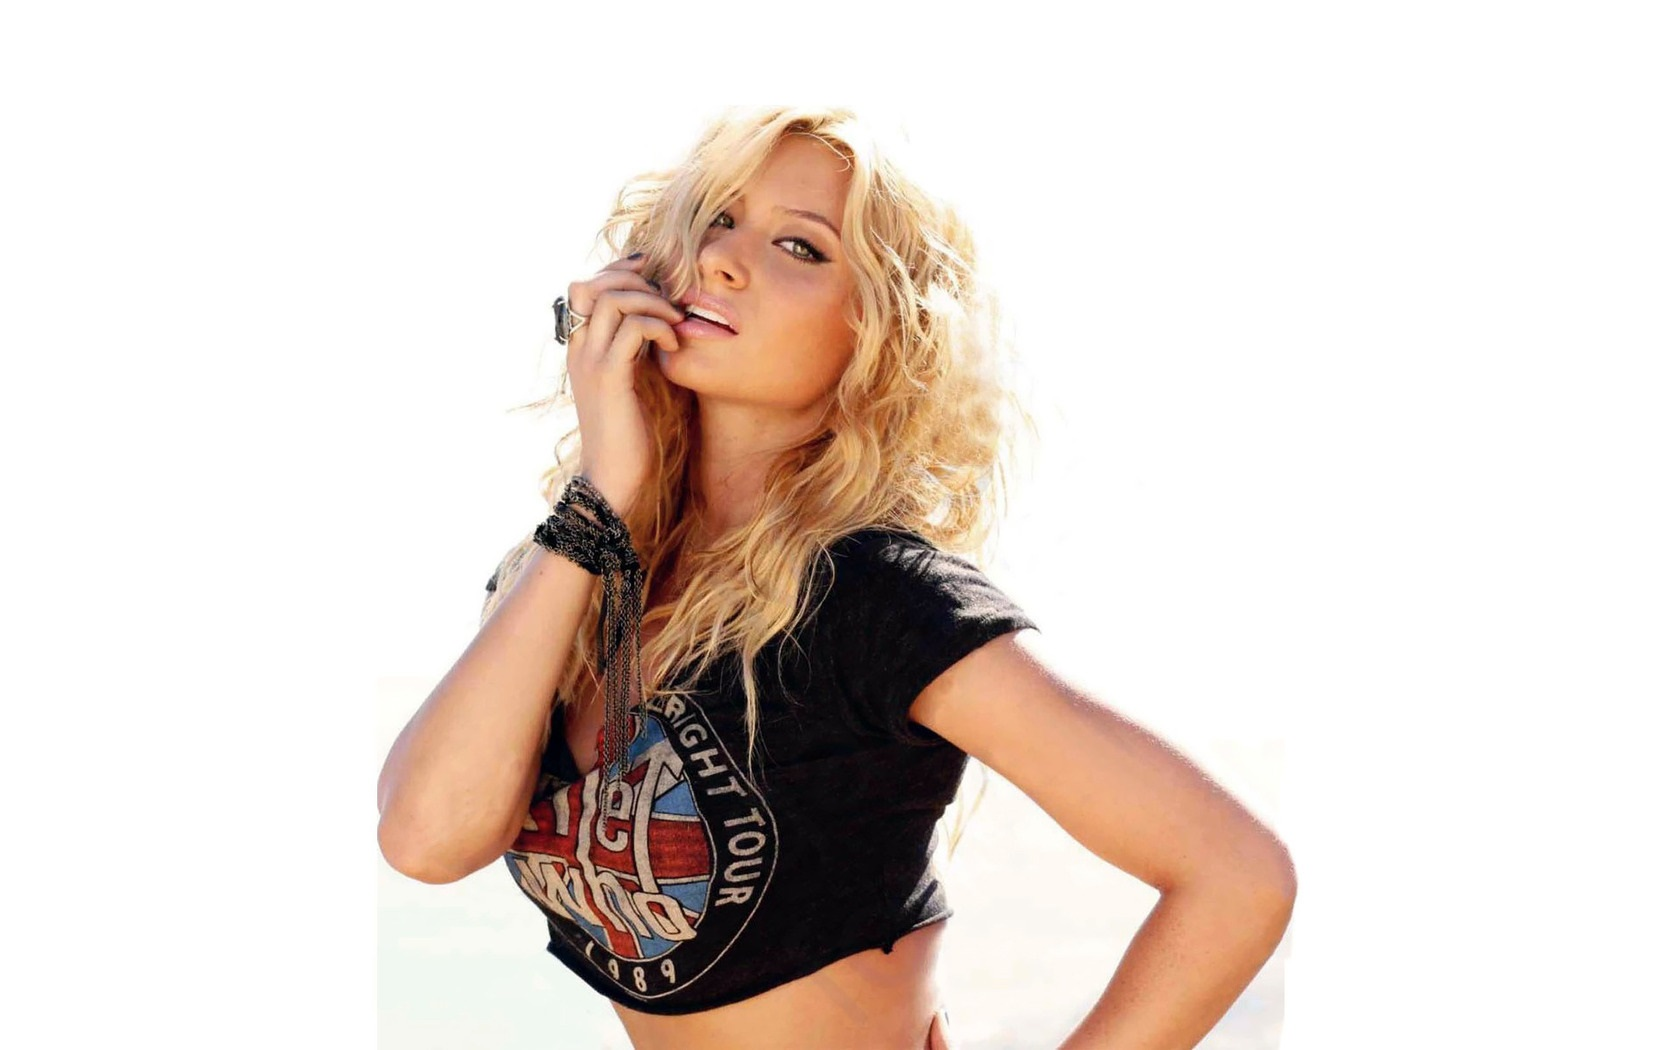 alyson michalka wide hd wallpaper download alyson michalka images free 102